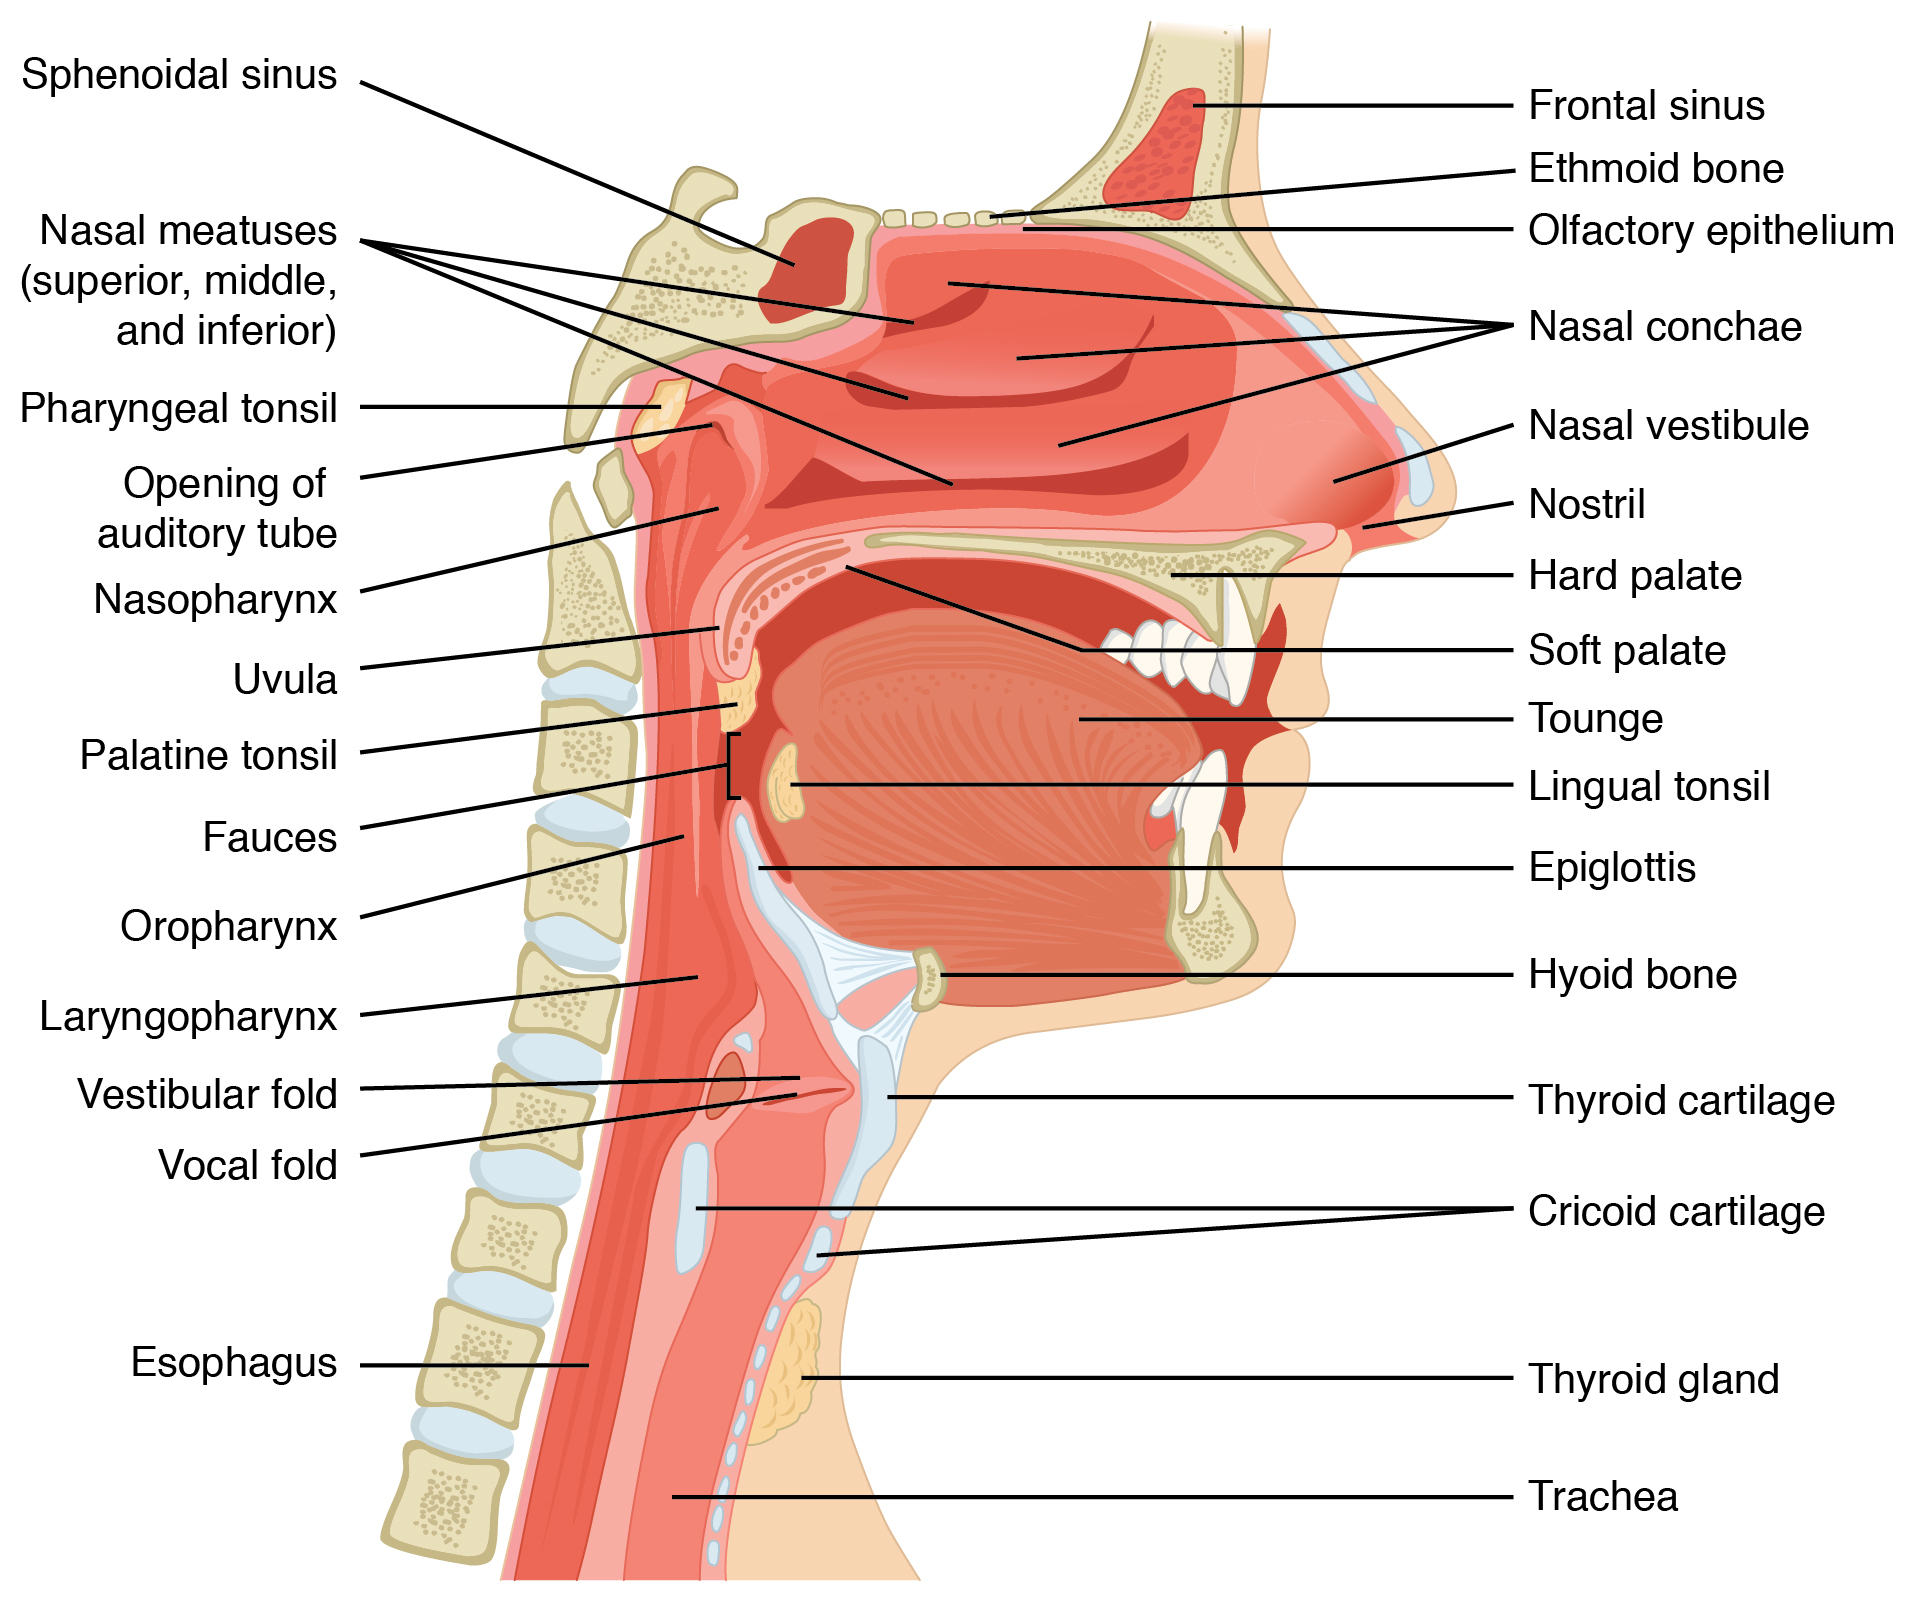 Diagram Of Respiratory System 221 Organs And Structures Of The Respiratory System Anatomy And